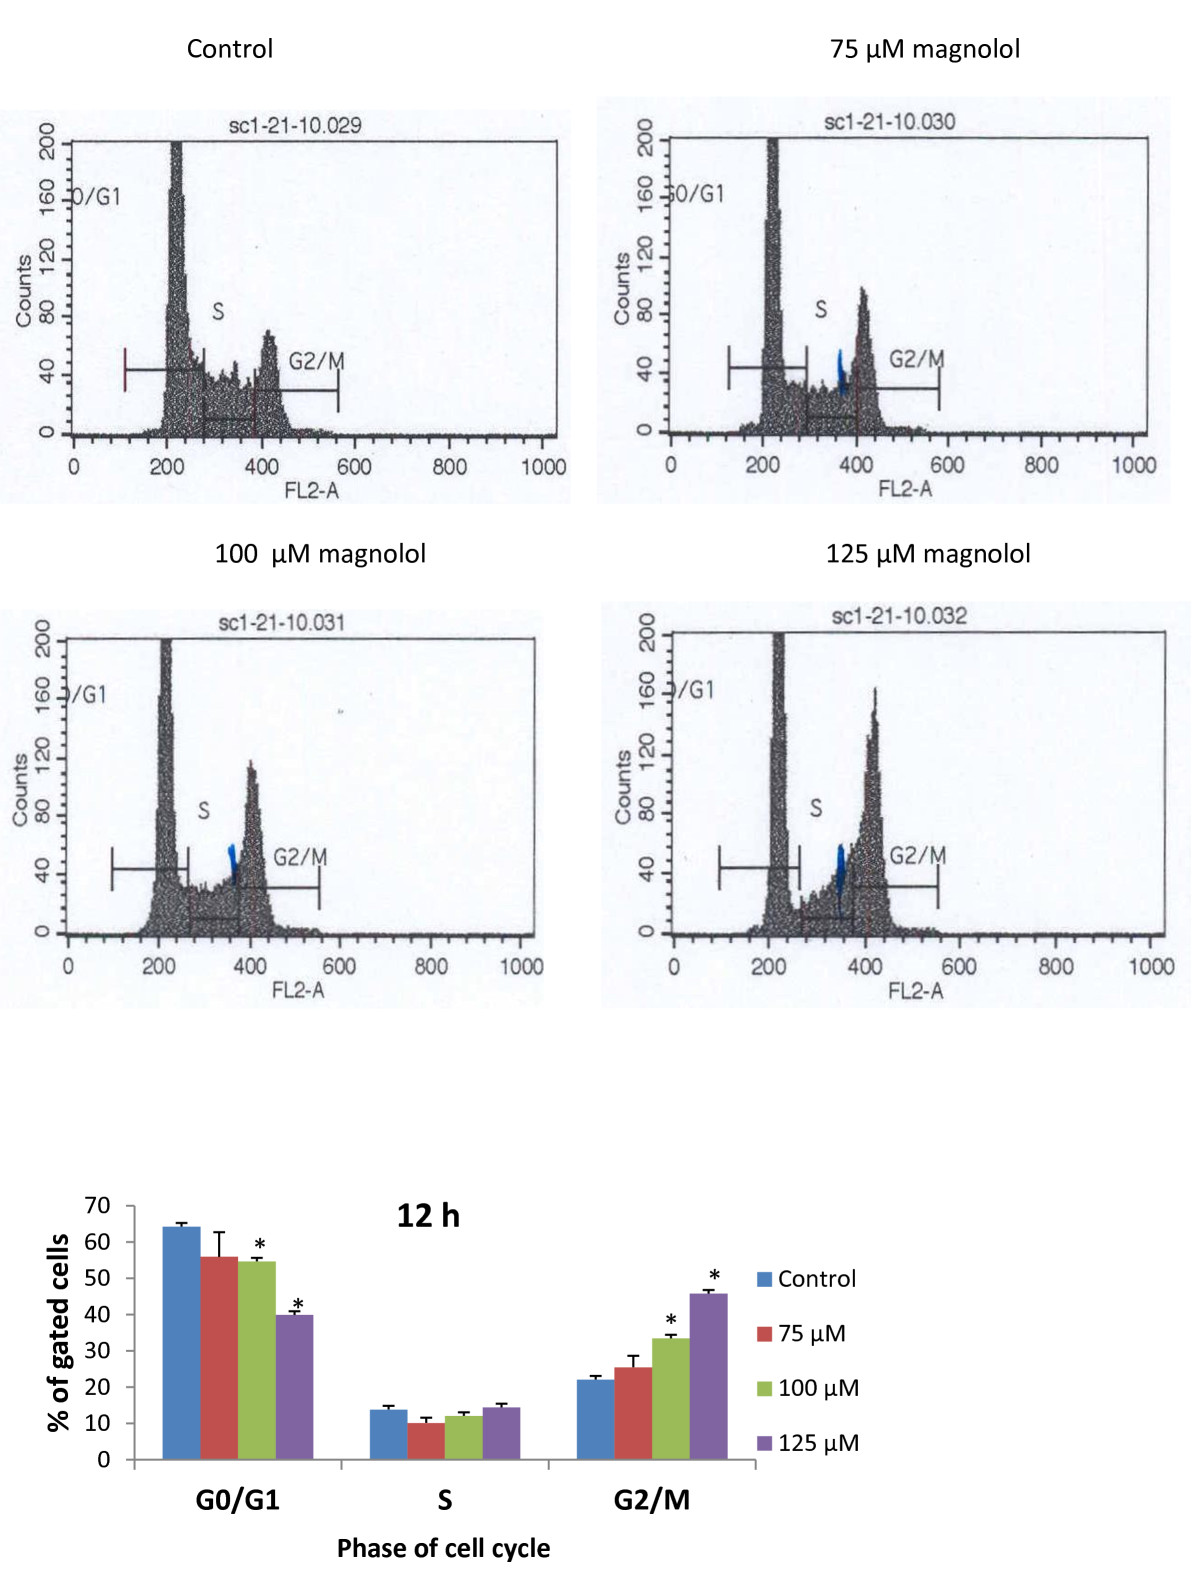 https://static-content.springer.com/image/art%3A10.1186%2F1471-2407-11-456/MediaObjects/12885_2011_Article_2971_Fig7_HTML.jpg